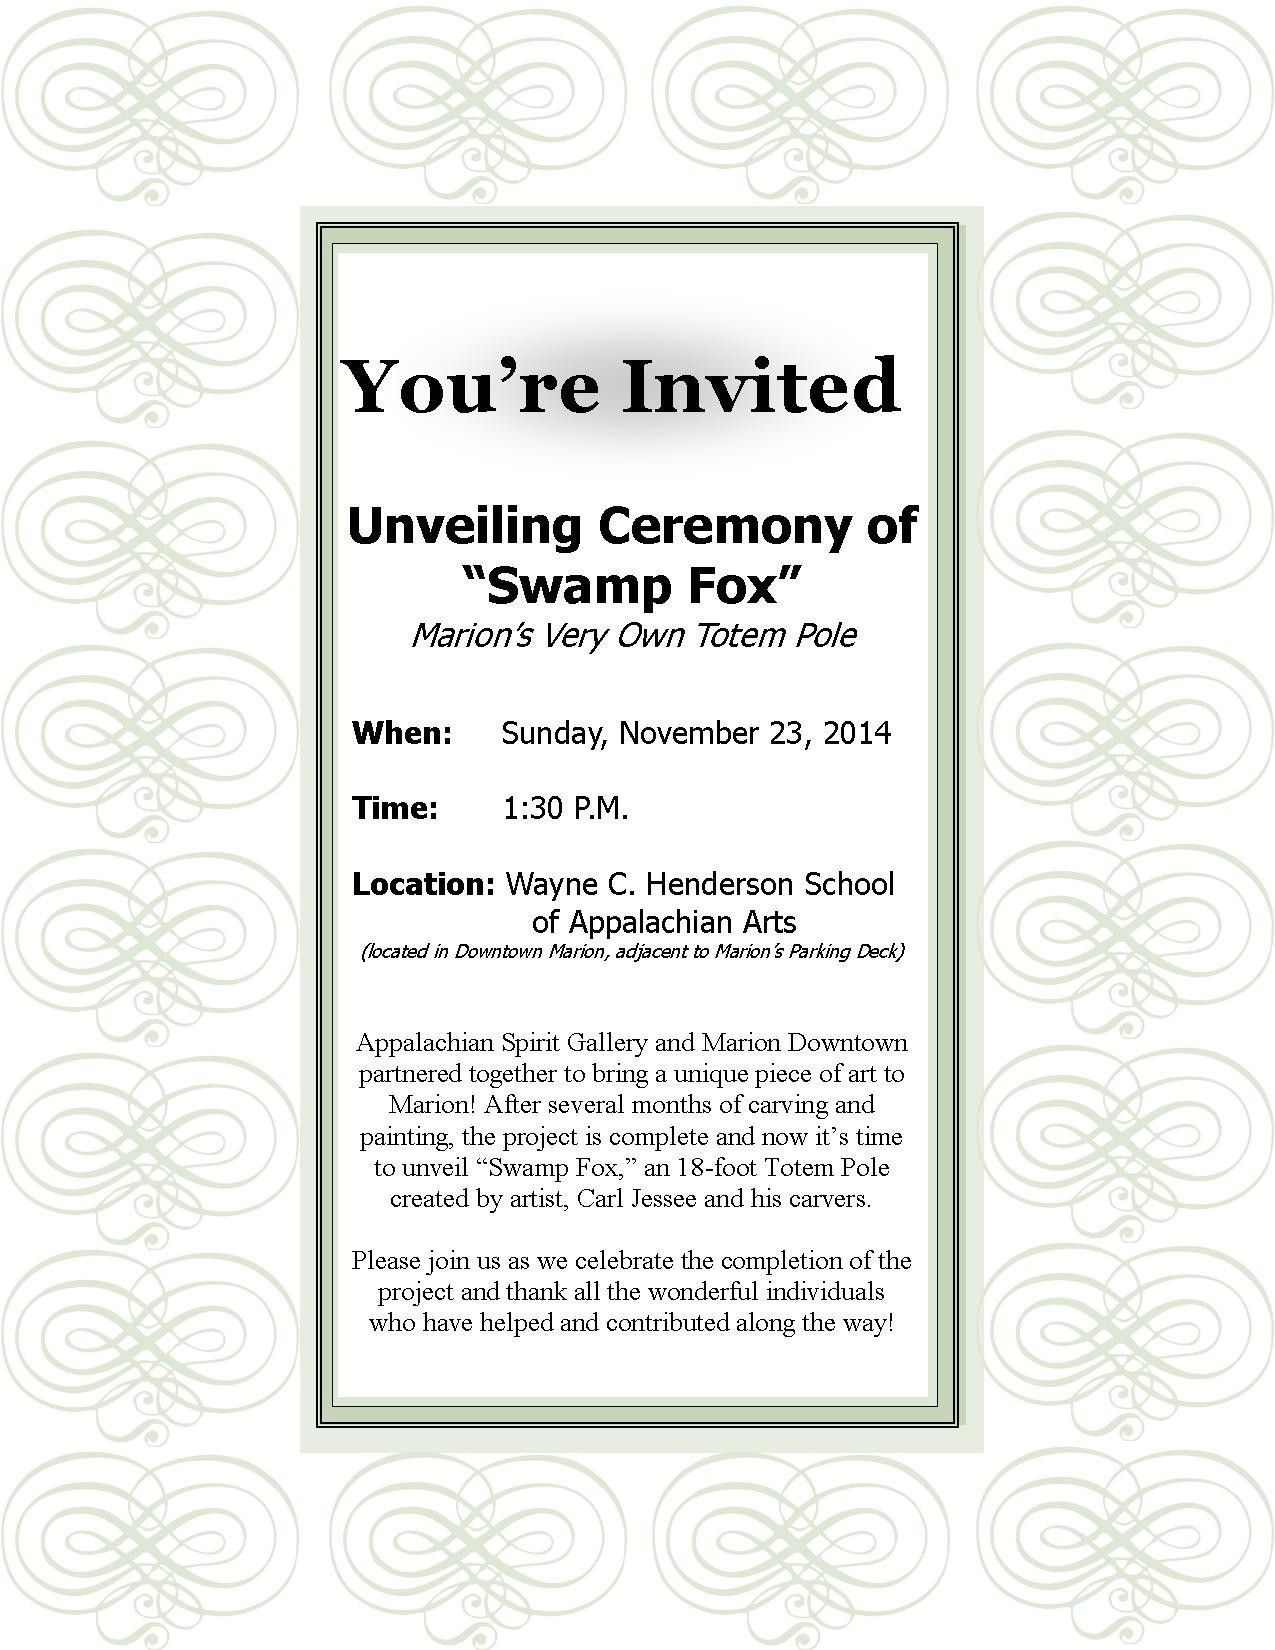 Formal Invitation Design Template  Formal invitation design